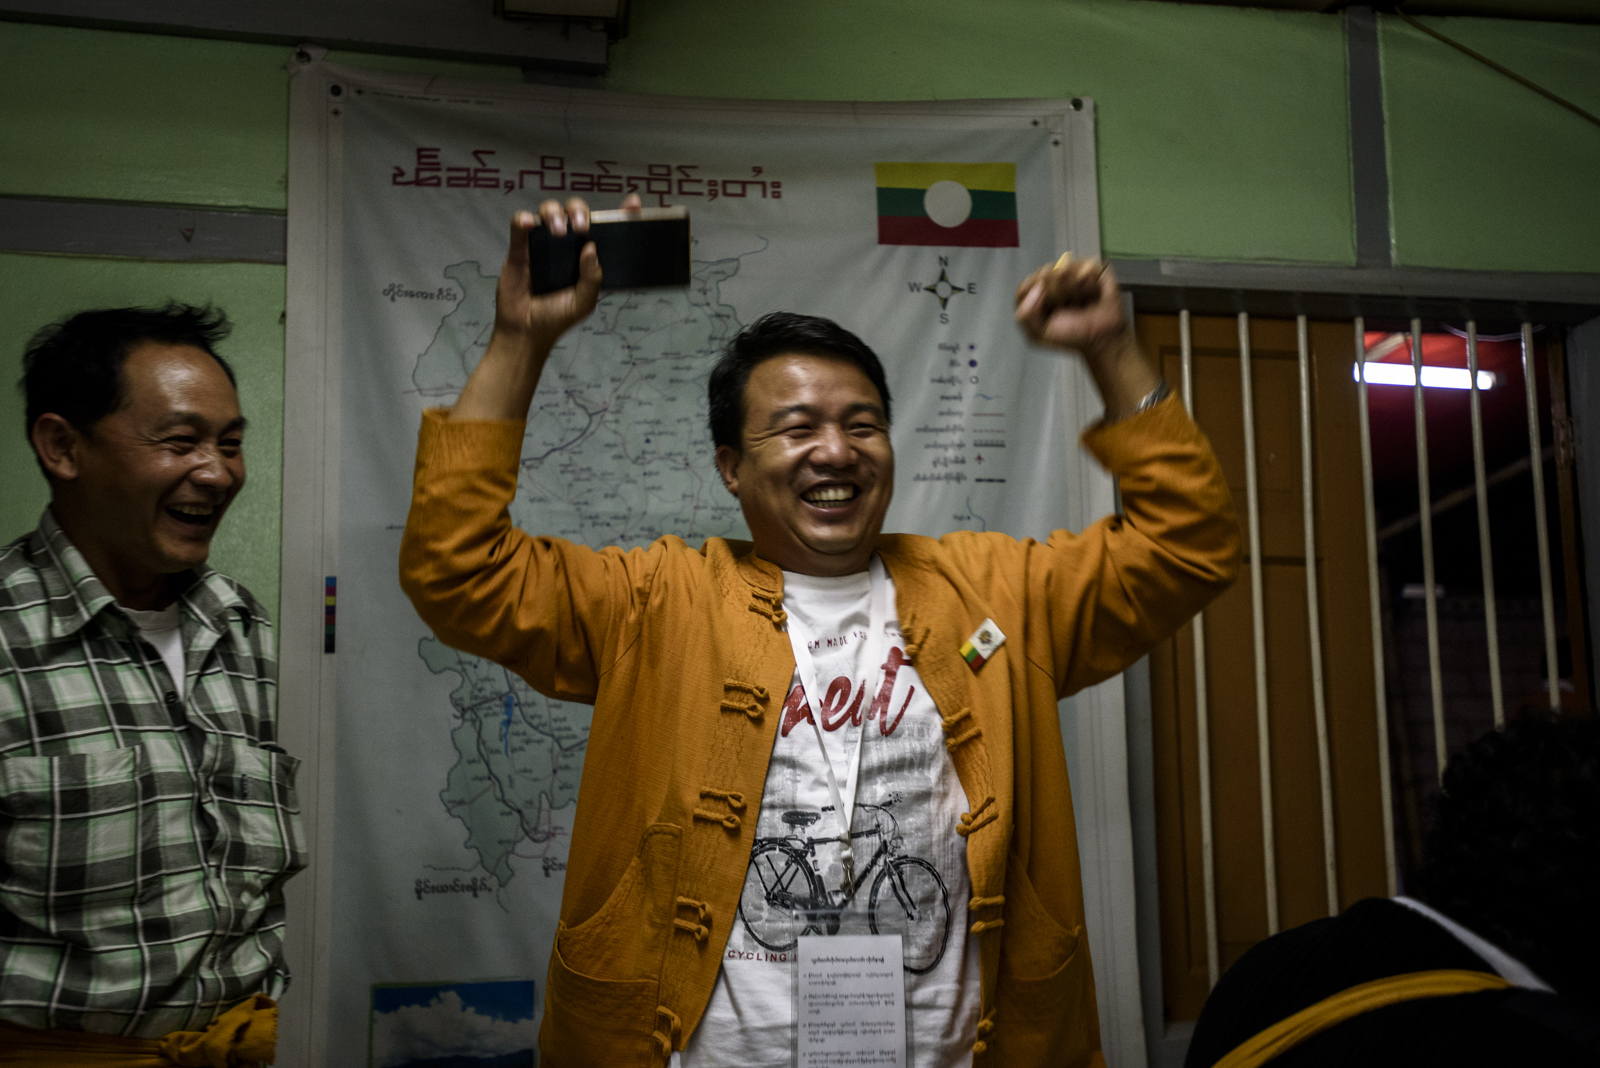 One Leng celebrates after learning he received the most votes at one of the polling stations in downtown Lashio. The tally is still unofficial and there are 129 in the city.